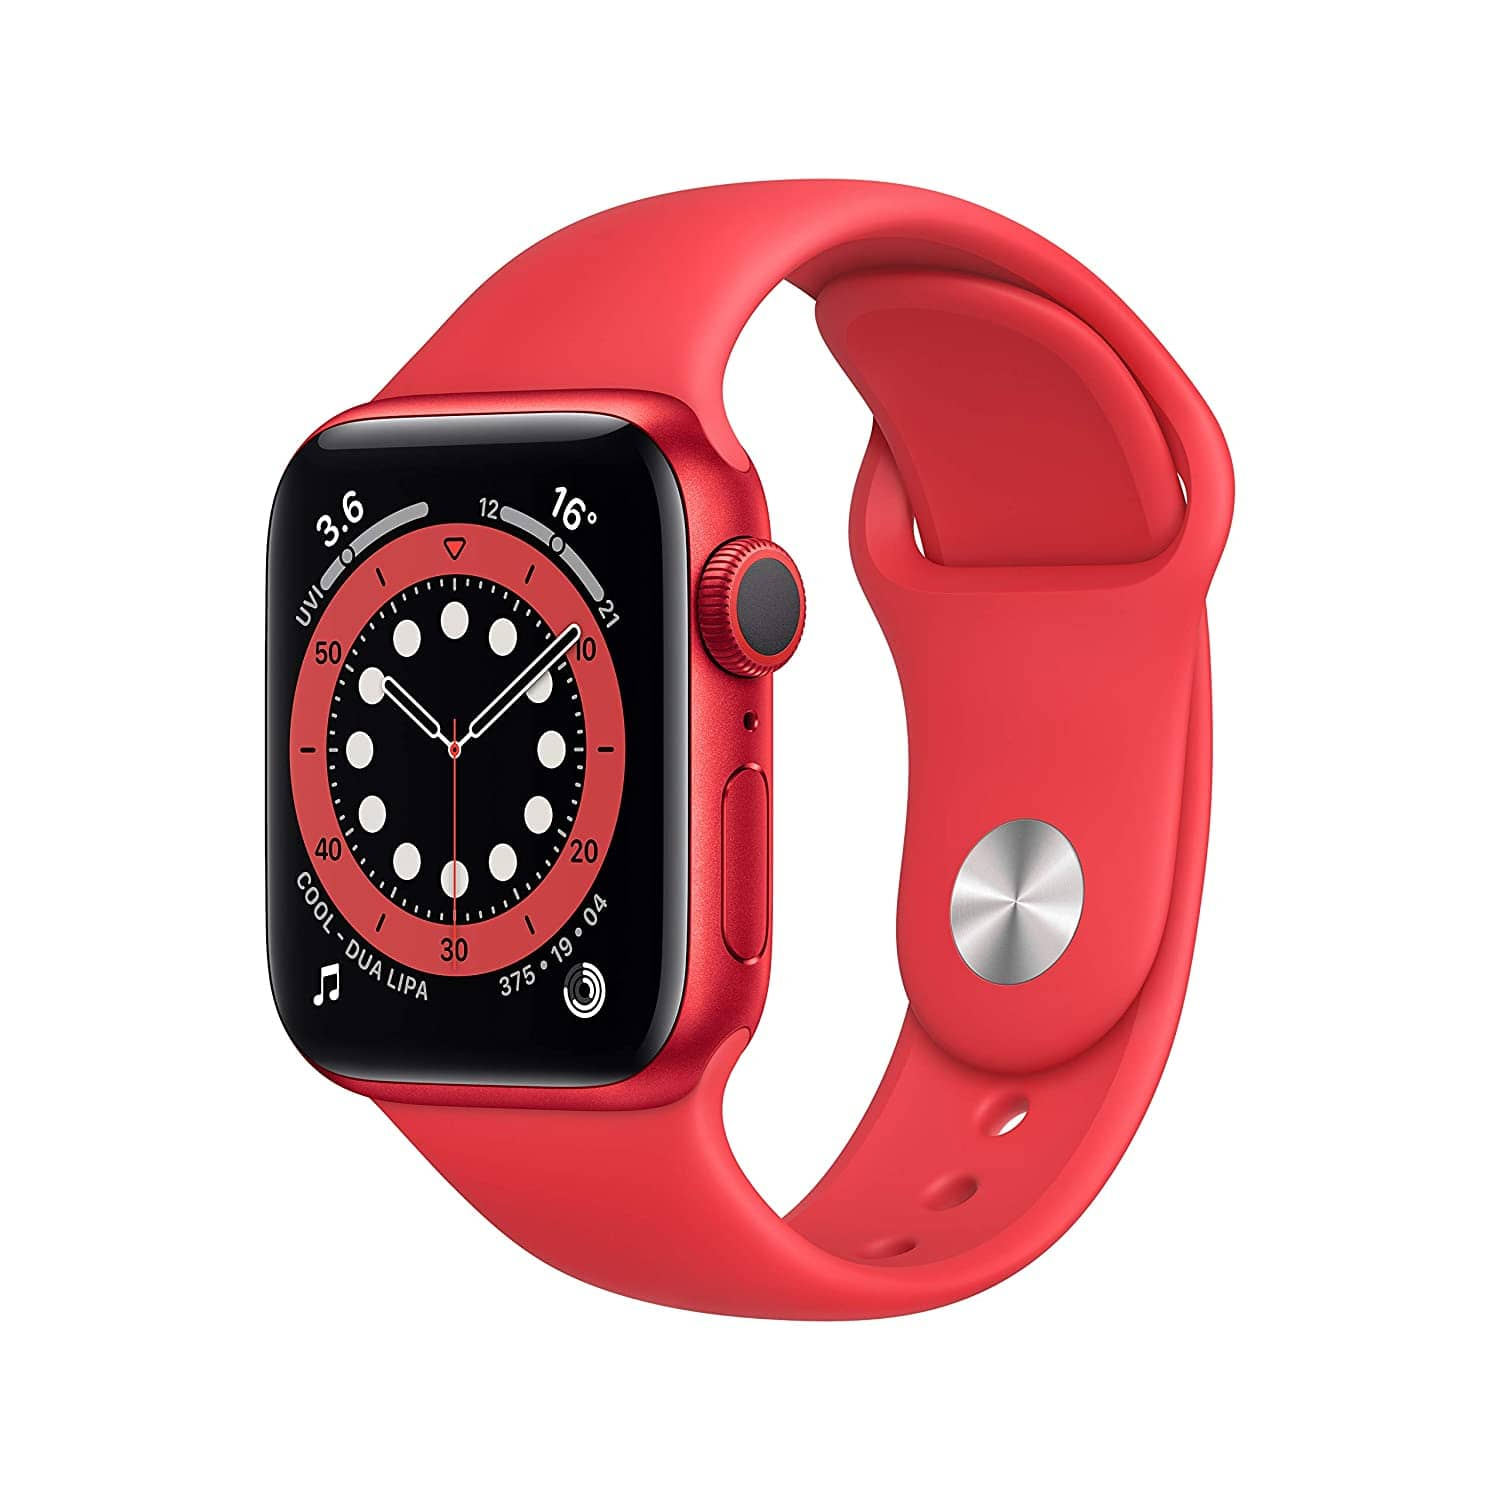 Apple Watch Series 6 pink and red